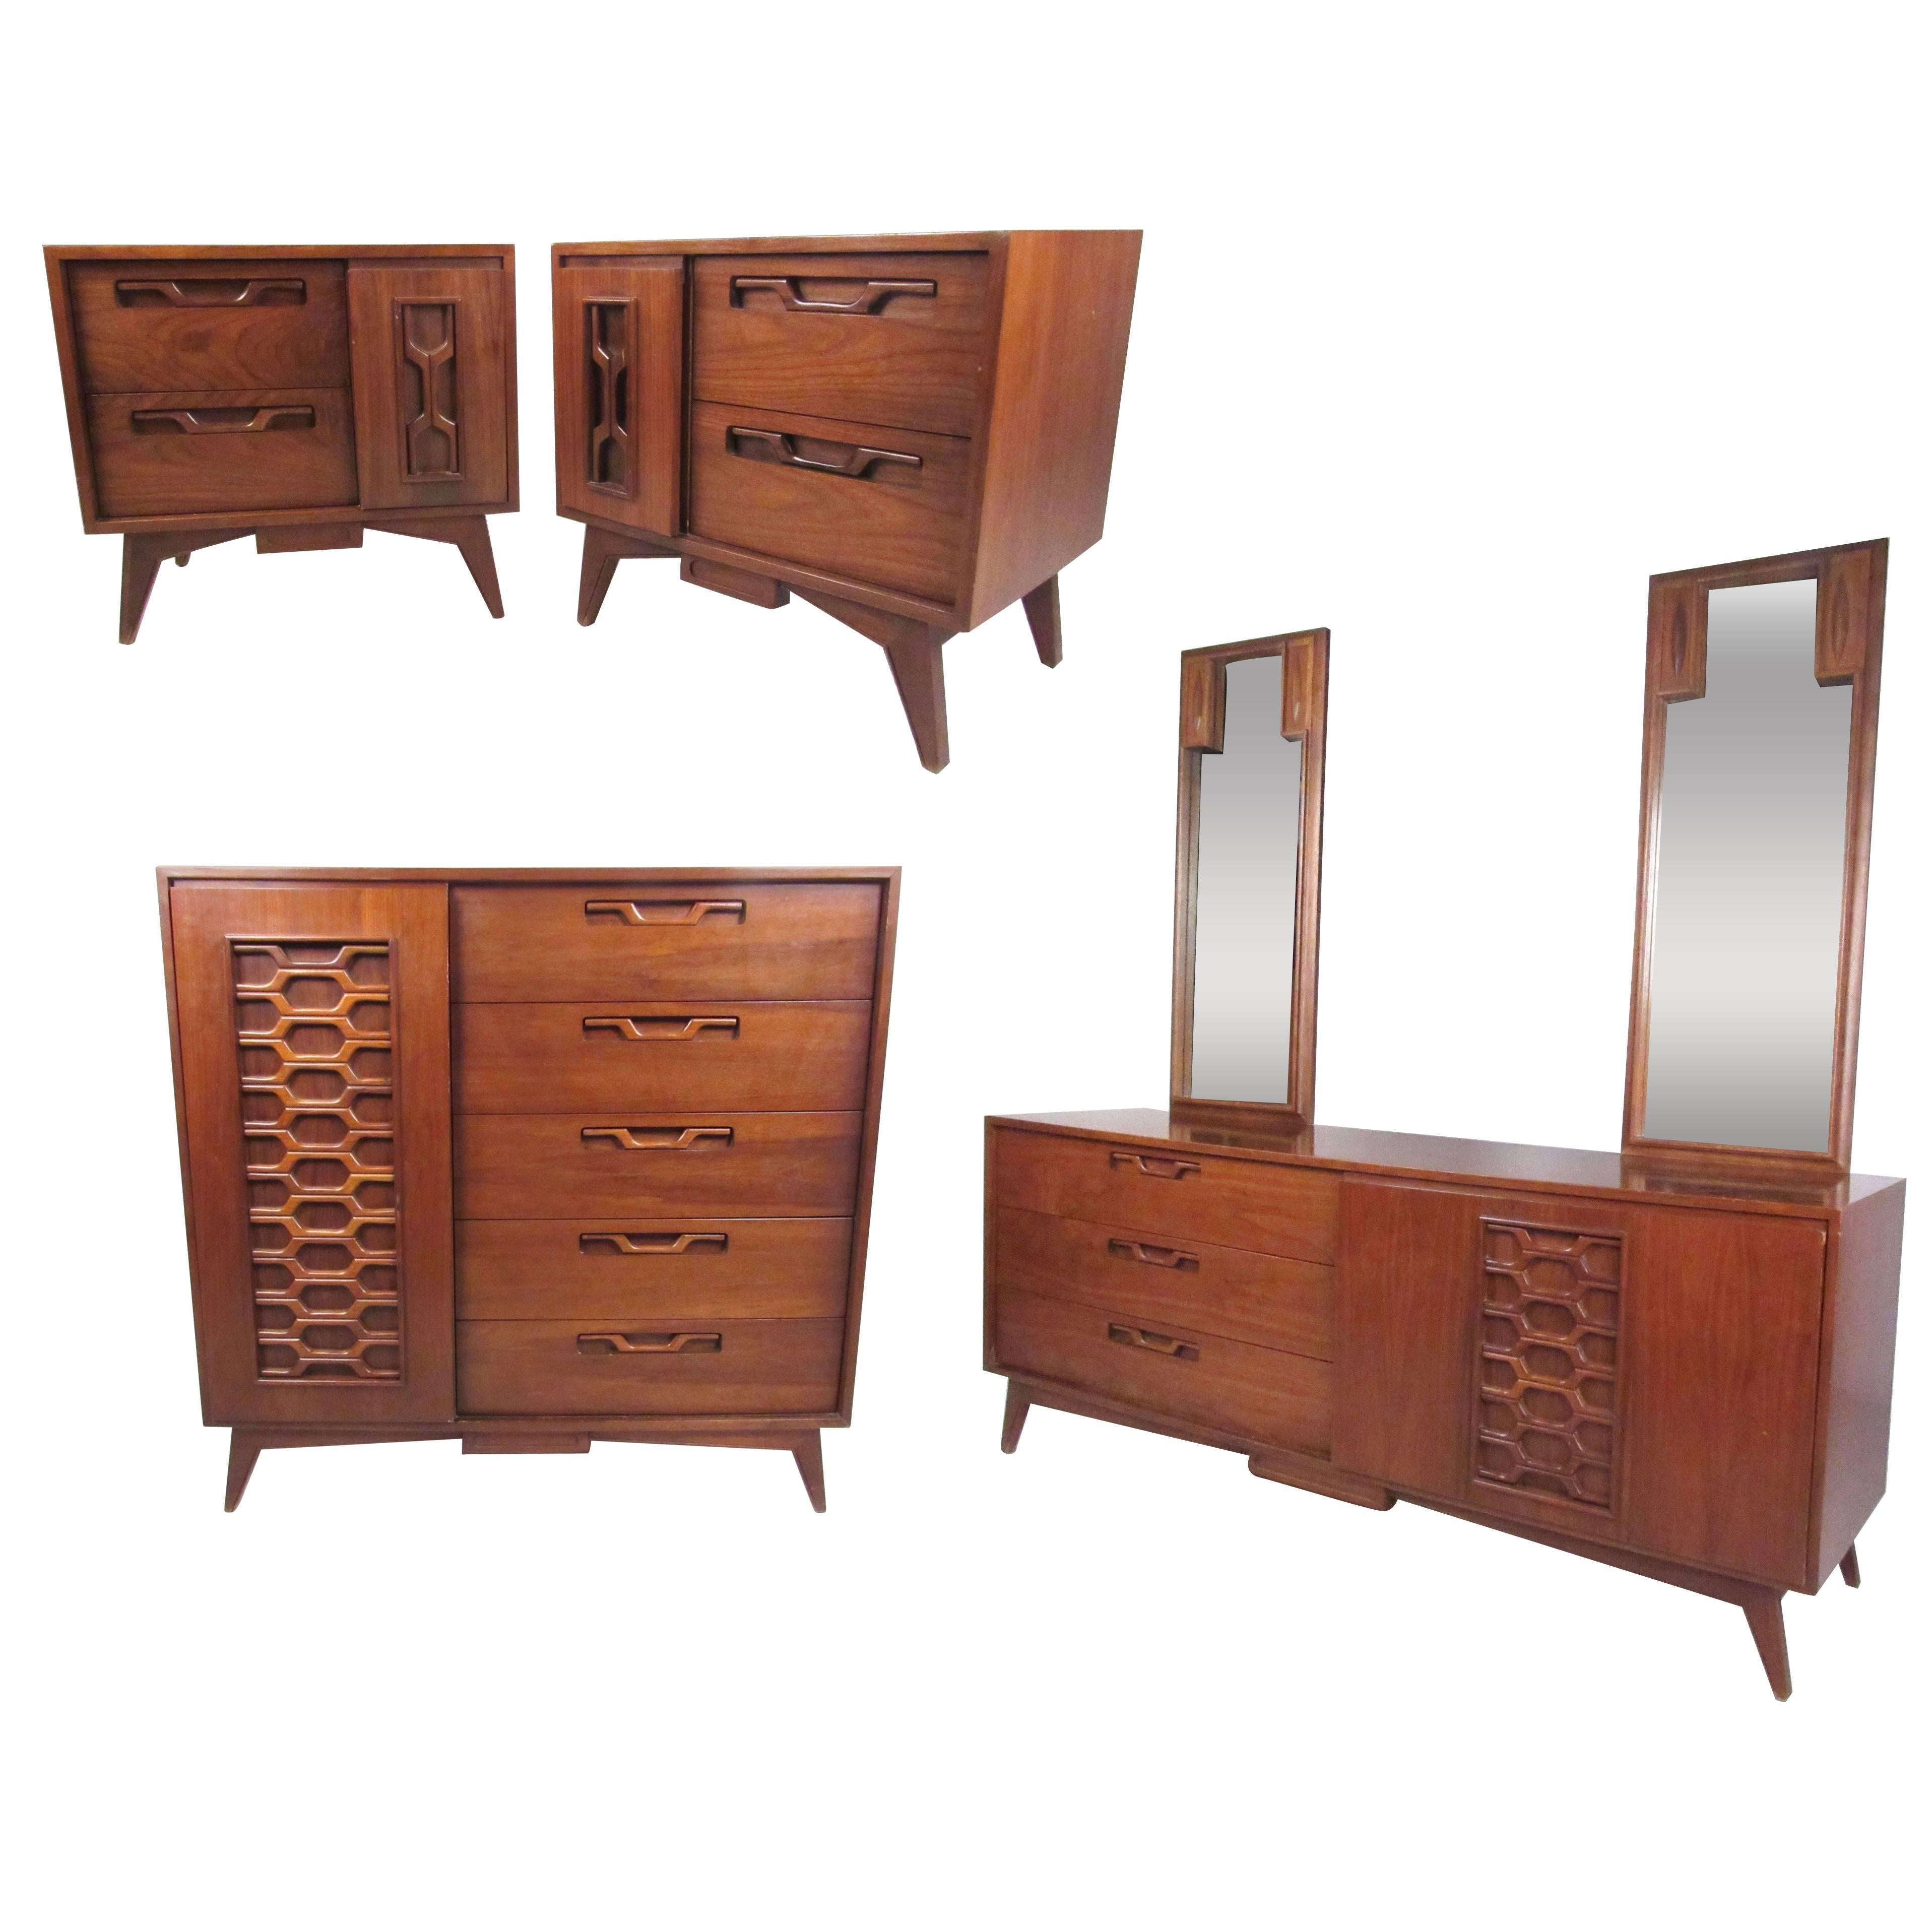 Stylish Vintage Walnut Bedroom Suite with Sculpted Front Detail